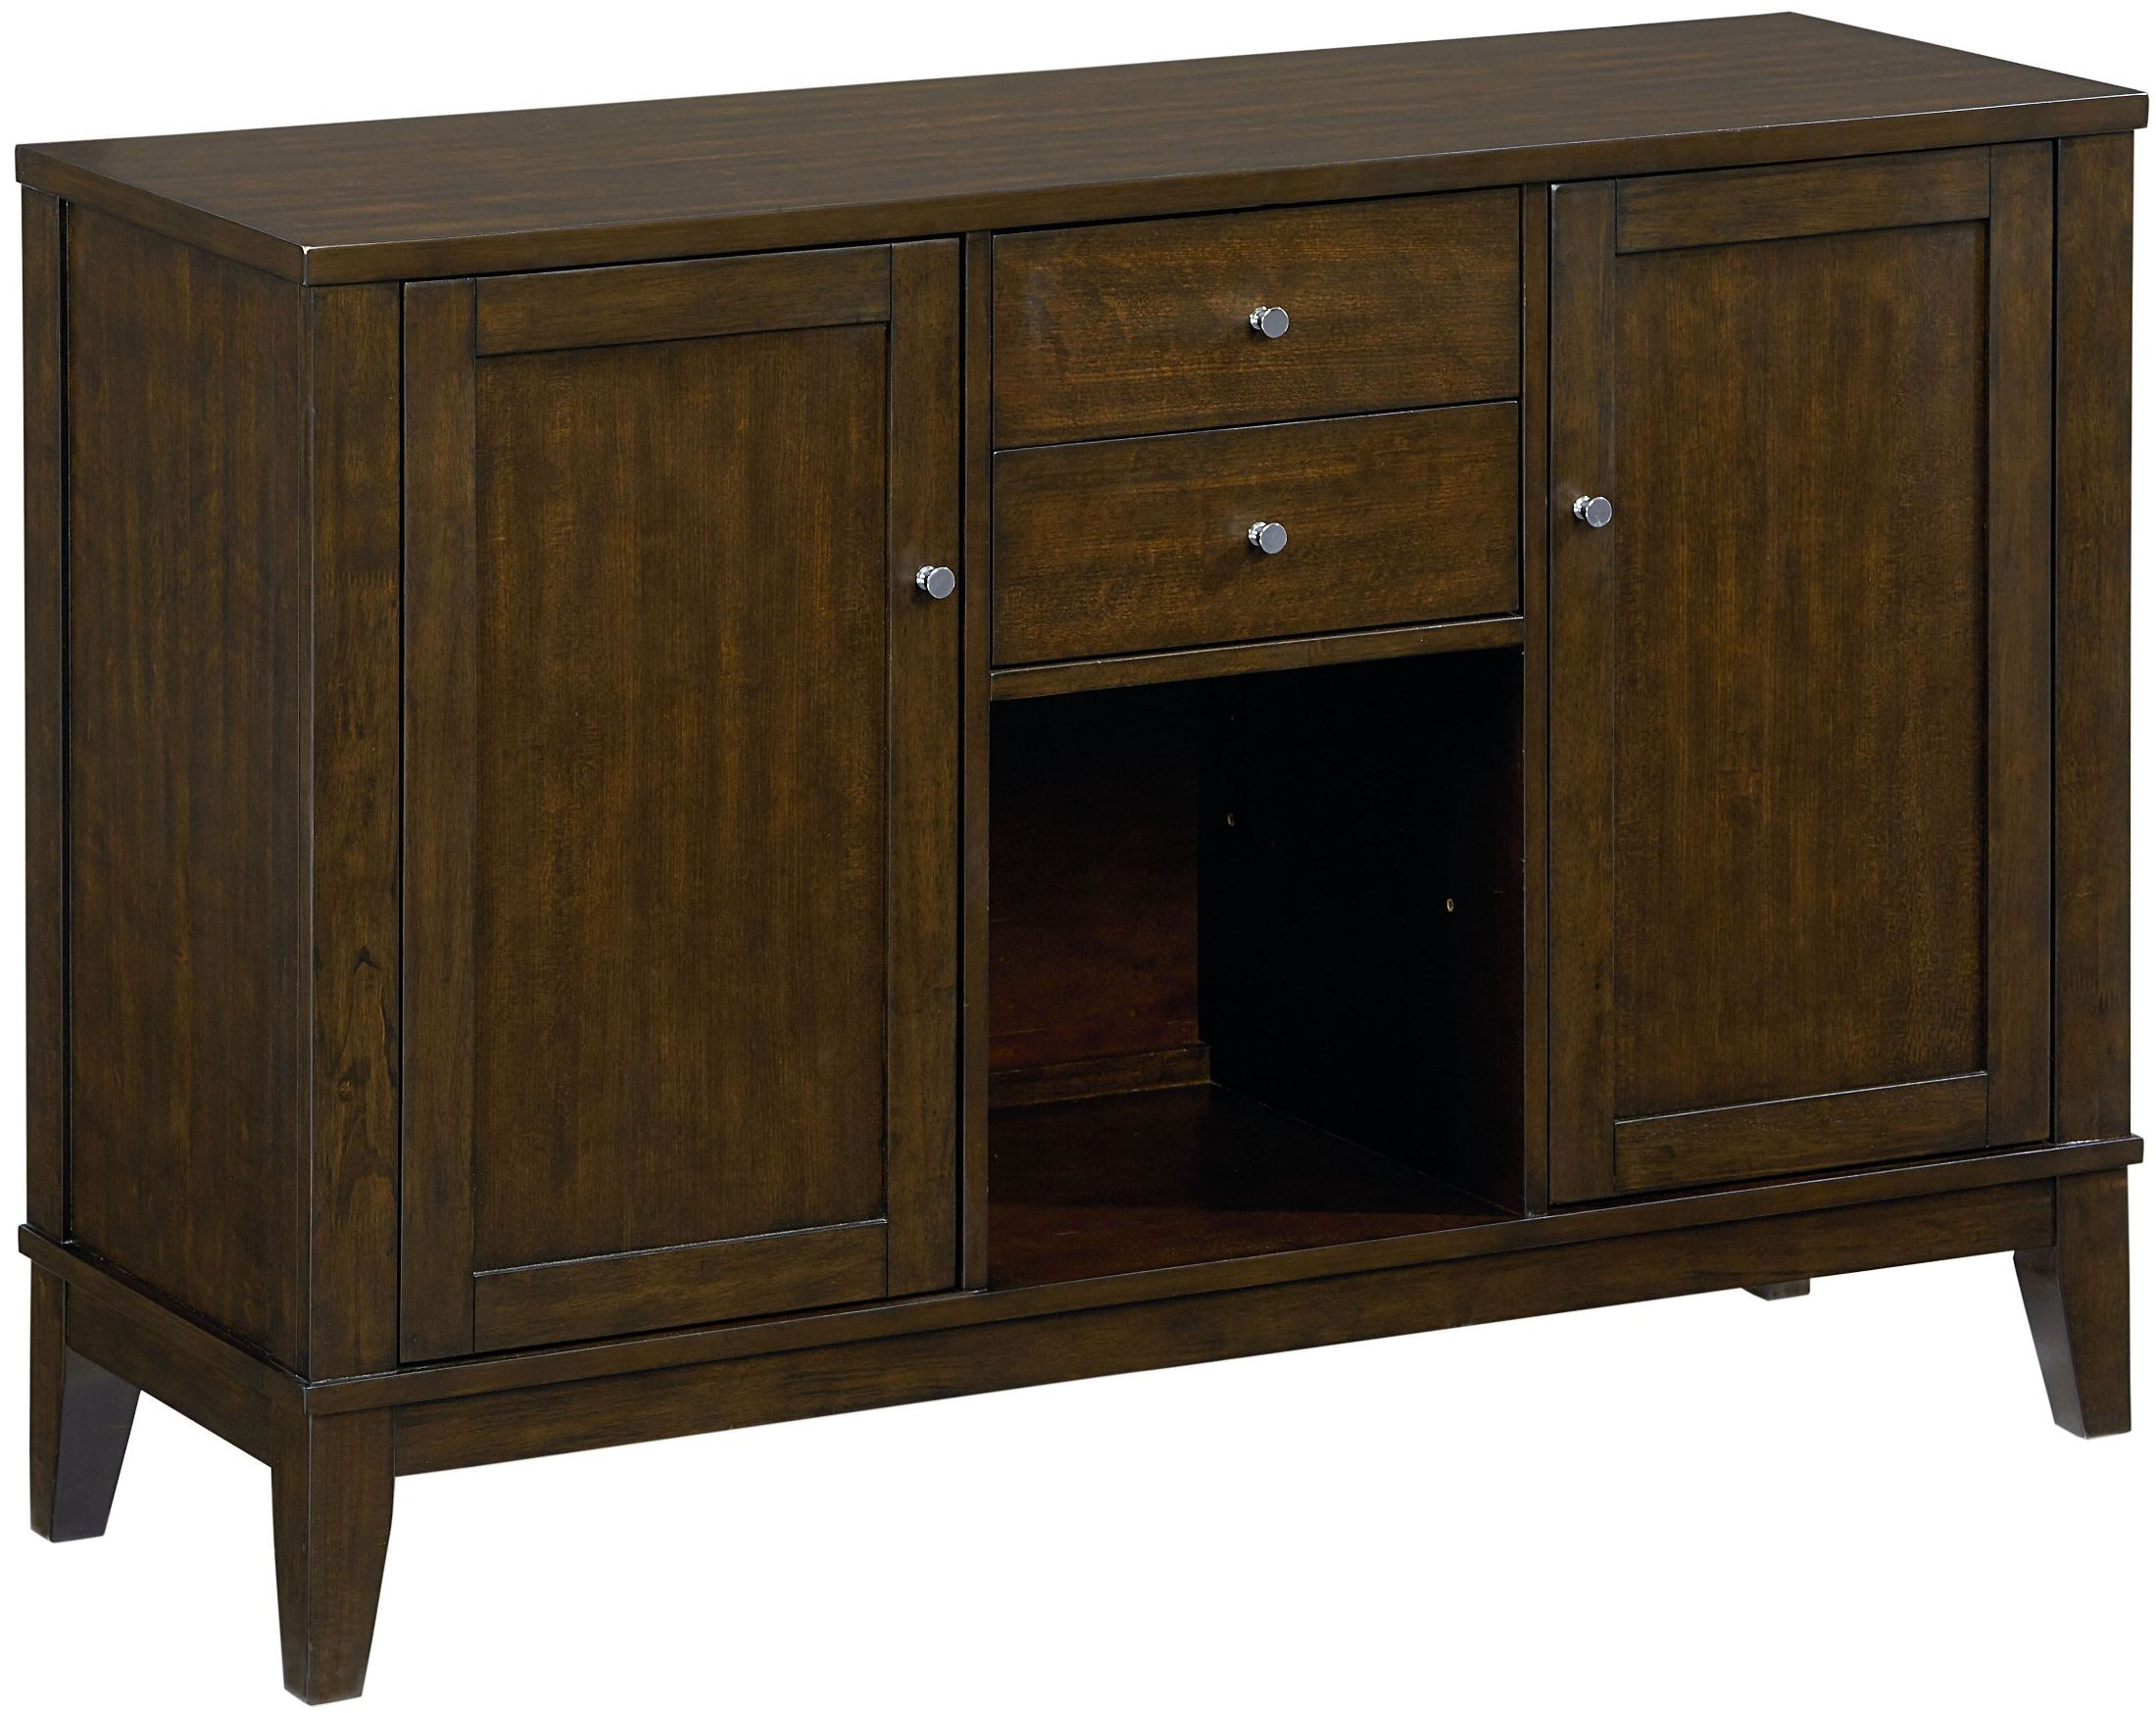 Noveau Dark Merlot Sideboard From Standard Furniture Coleman Furniture